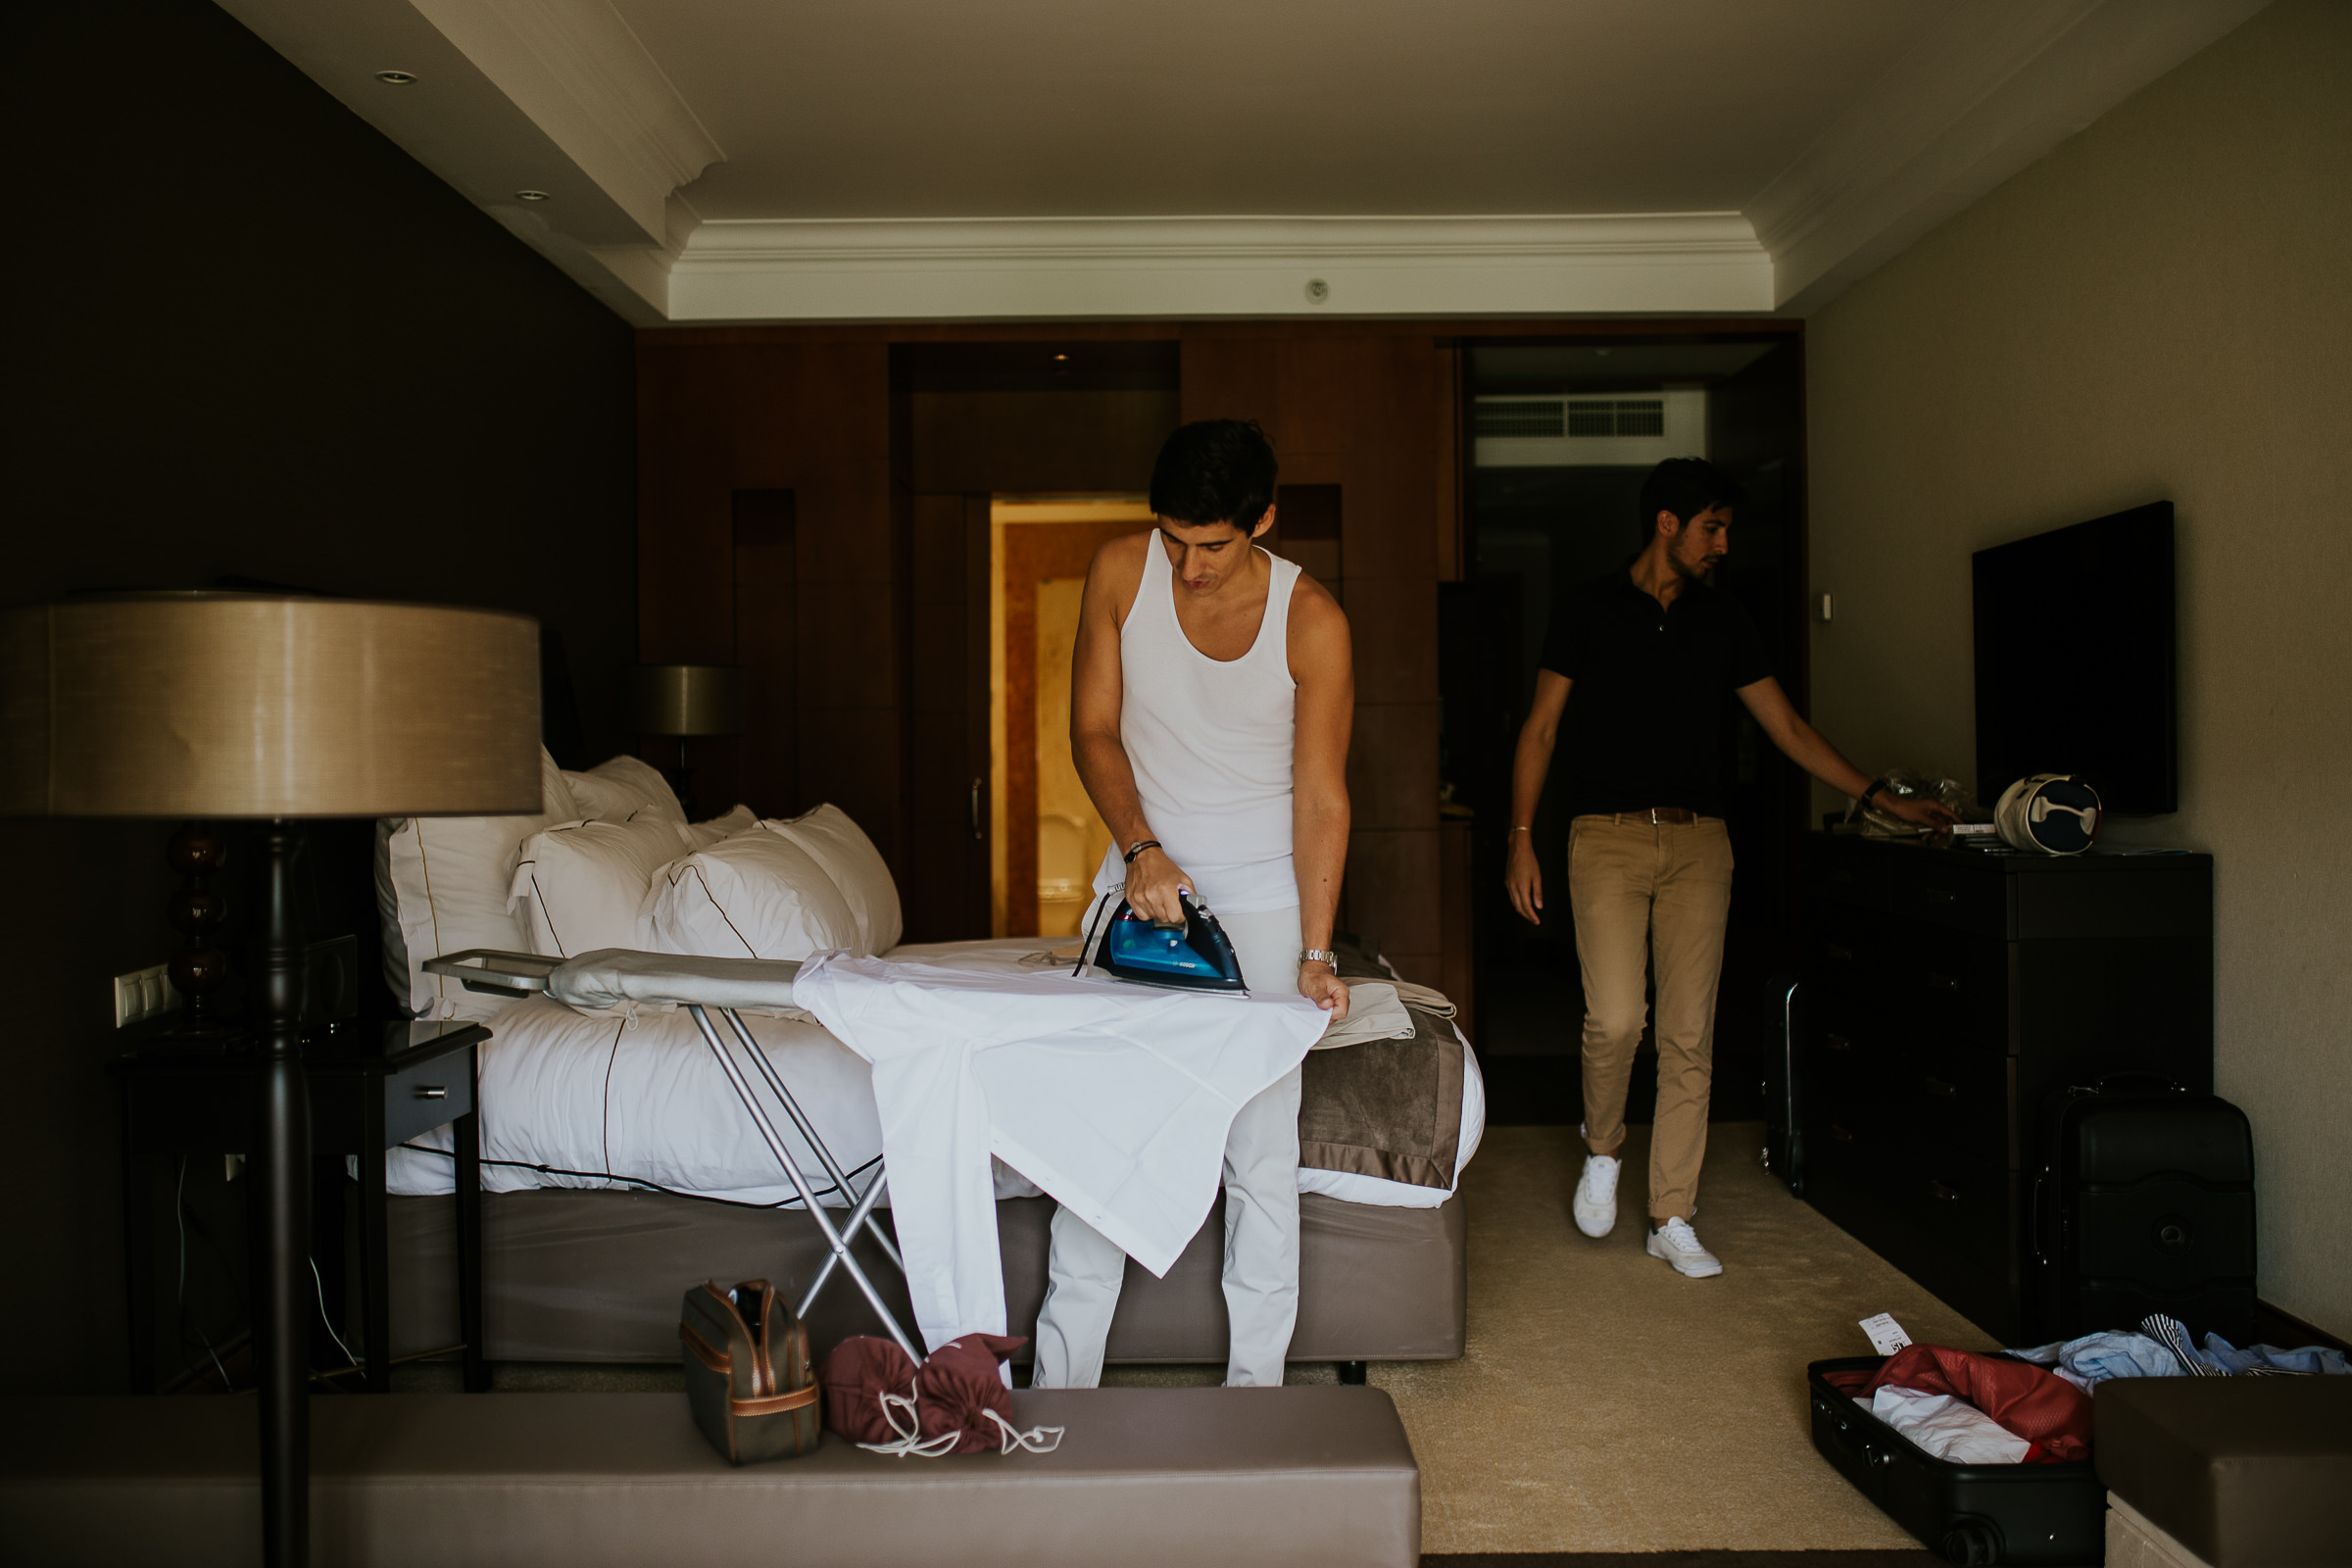 A guy ironing is white shirt in the middle of the room